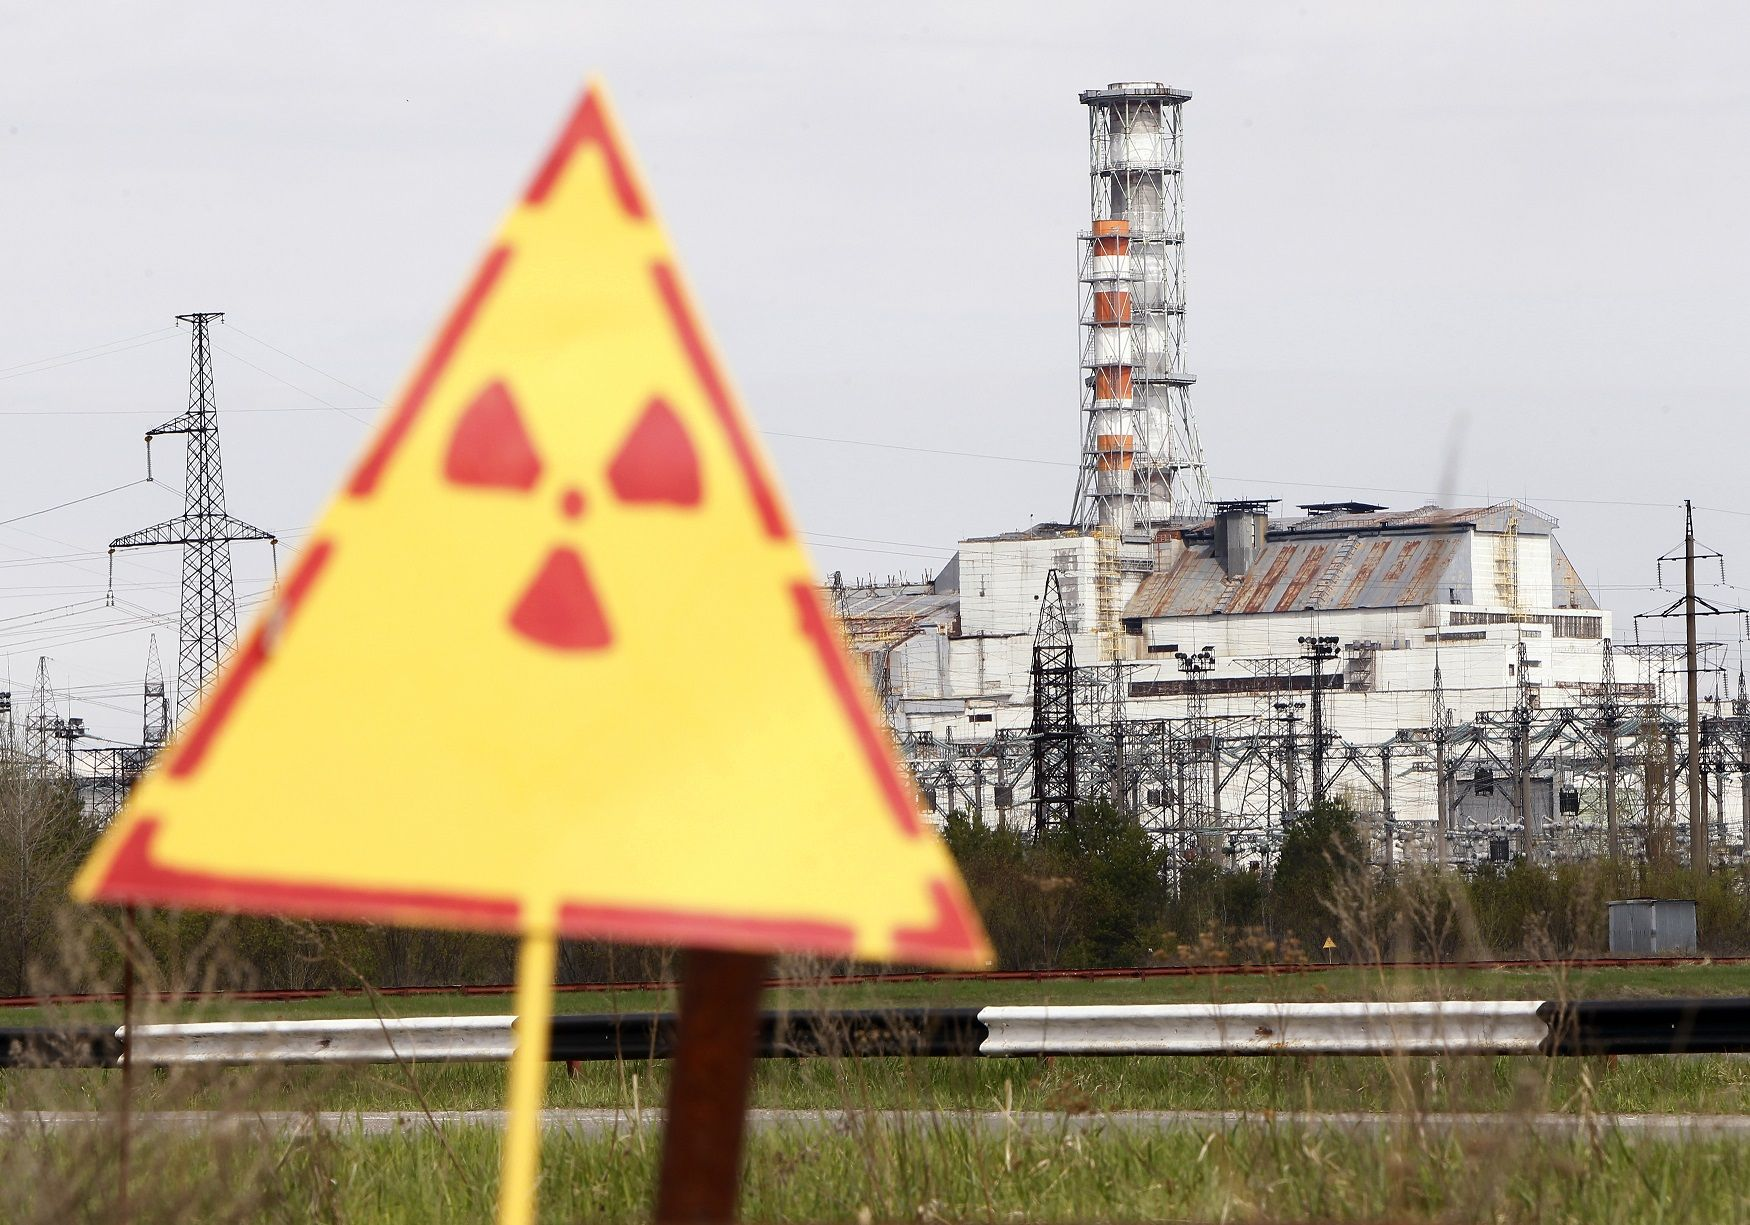 Chernobyl Disaster Exclusion Zone Transforming From